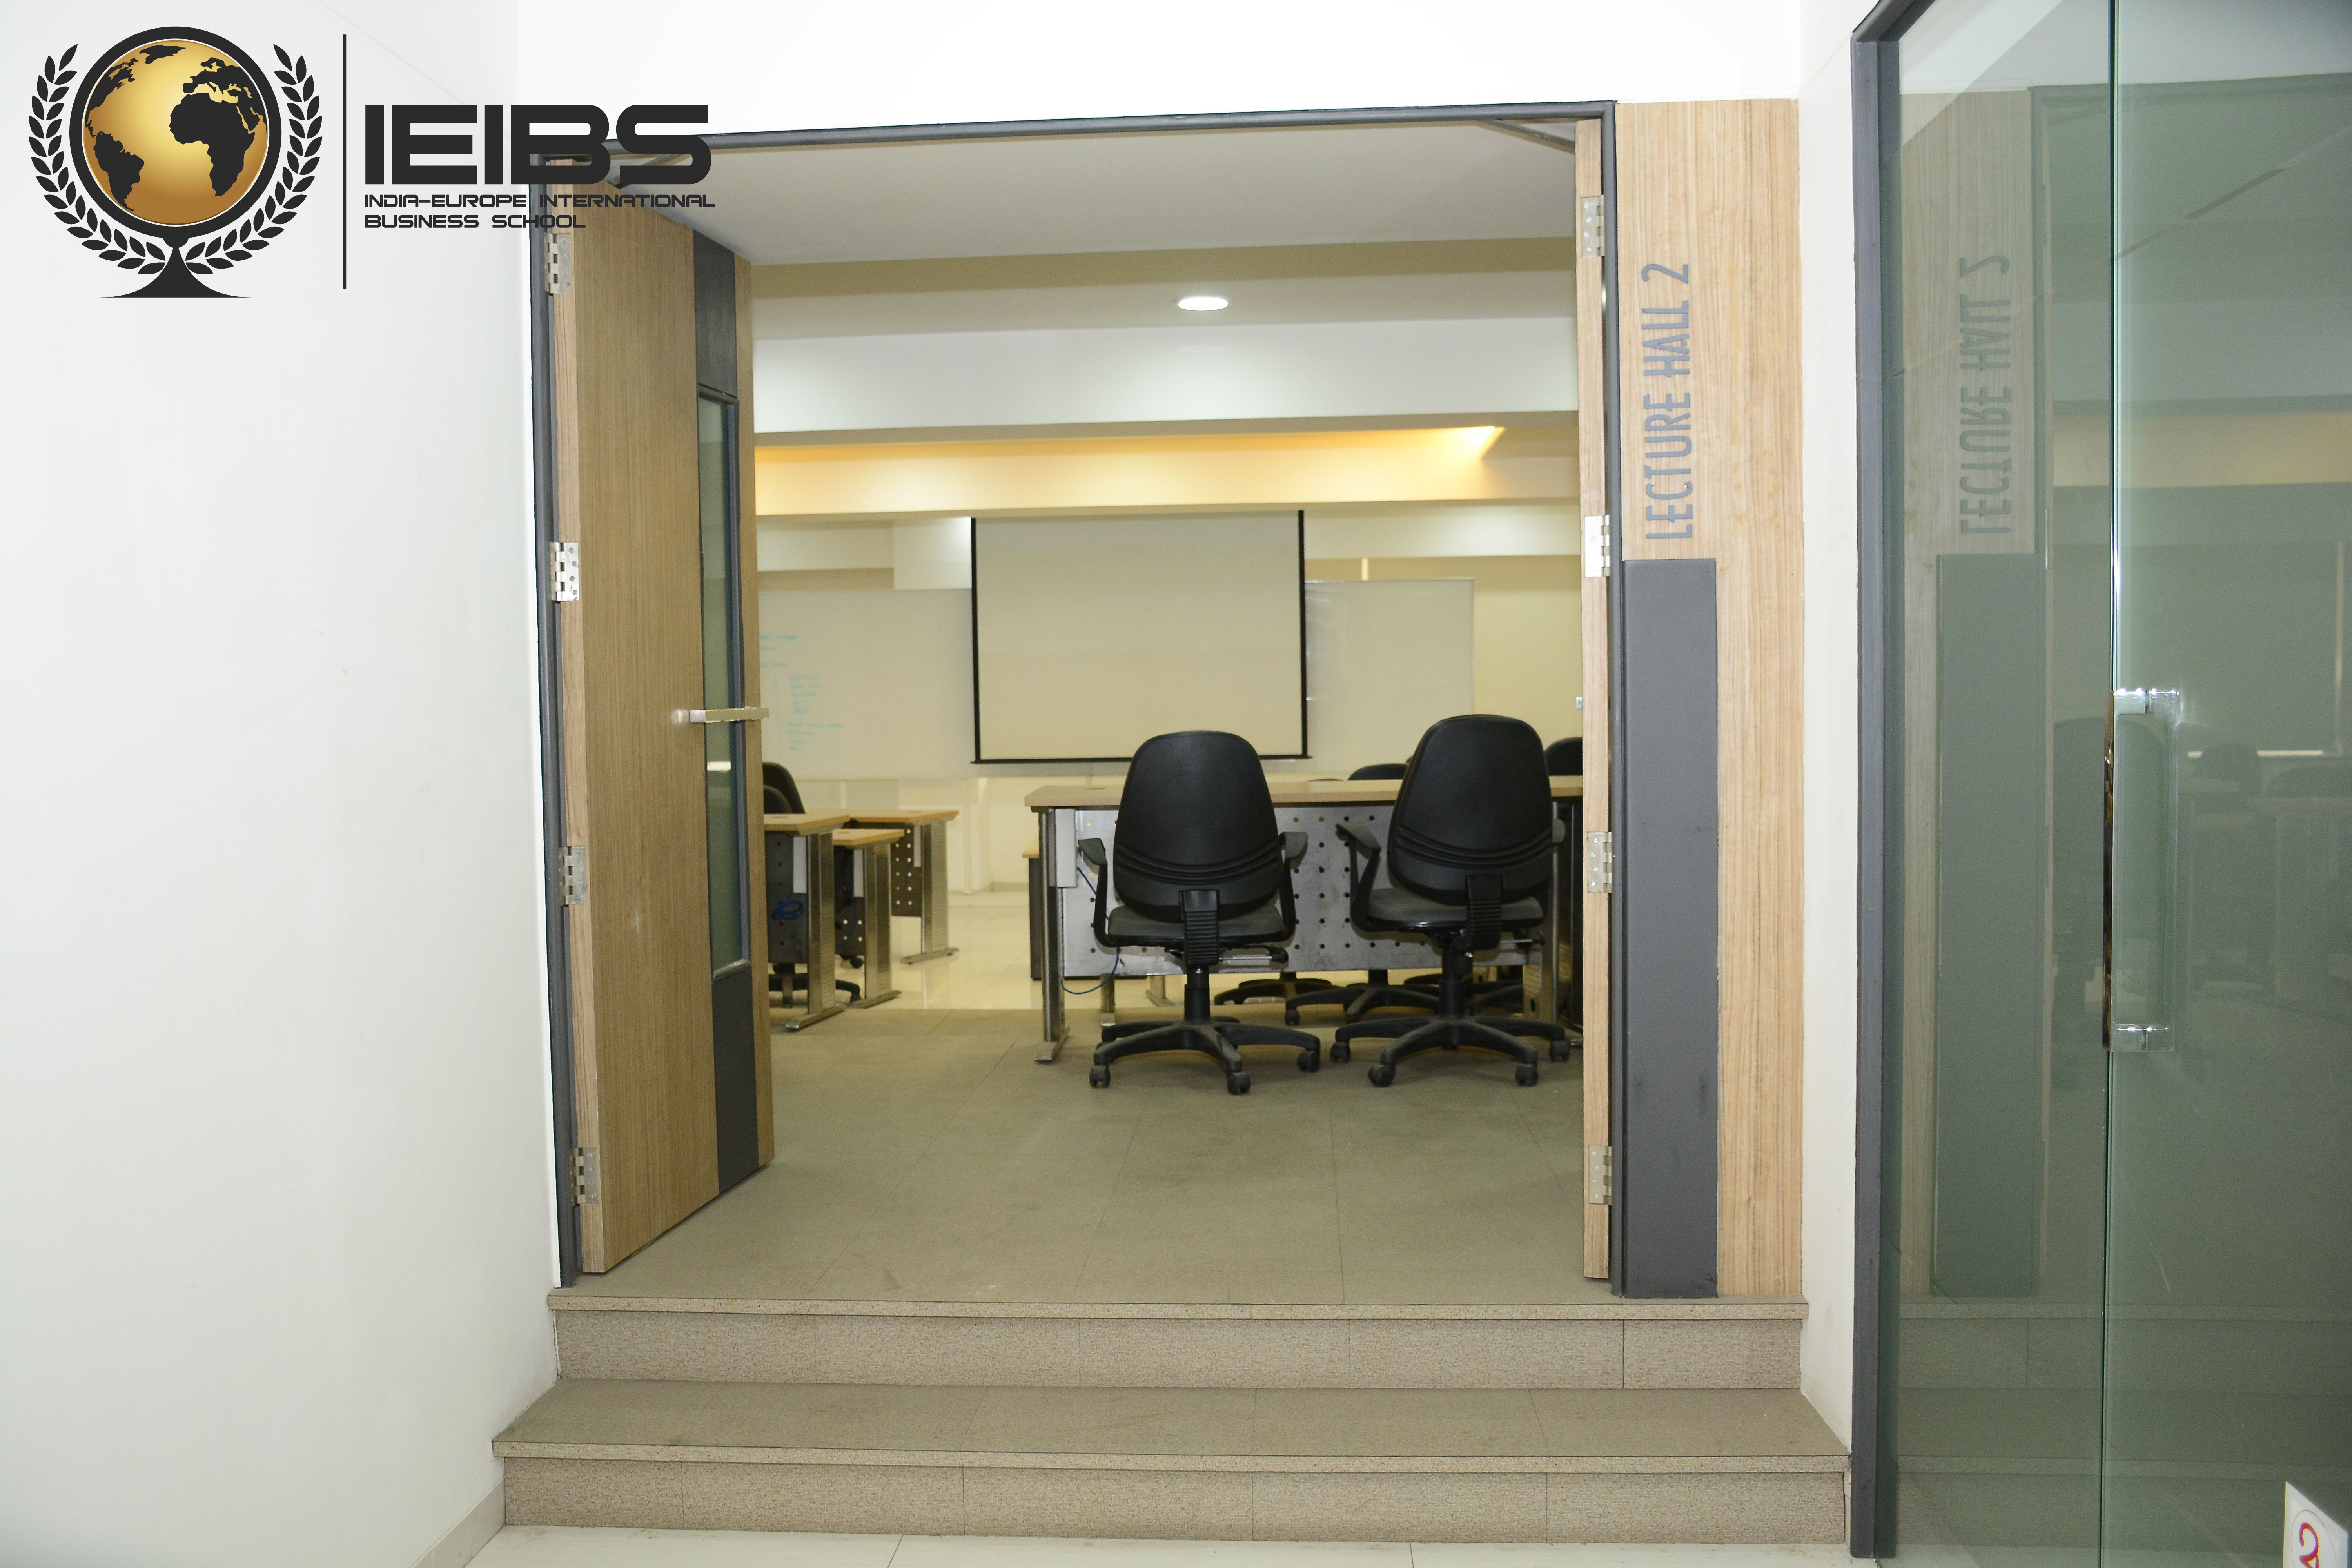 Lecture-room2-ieibs